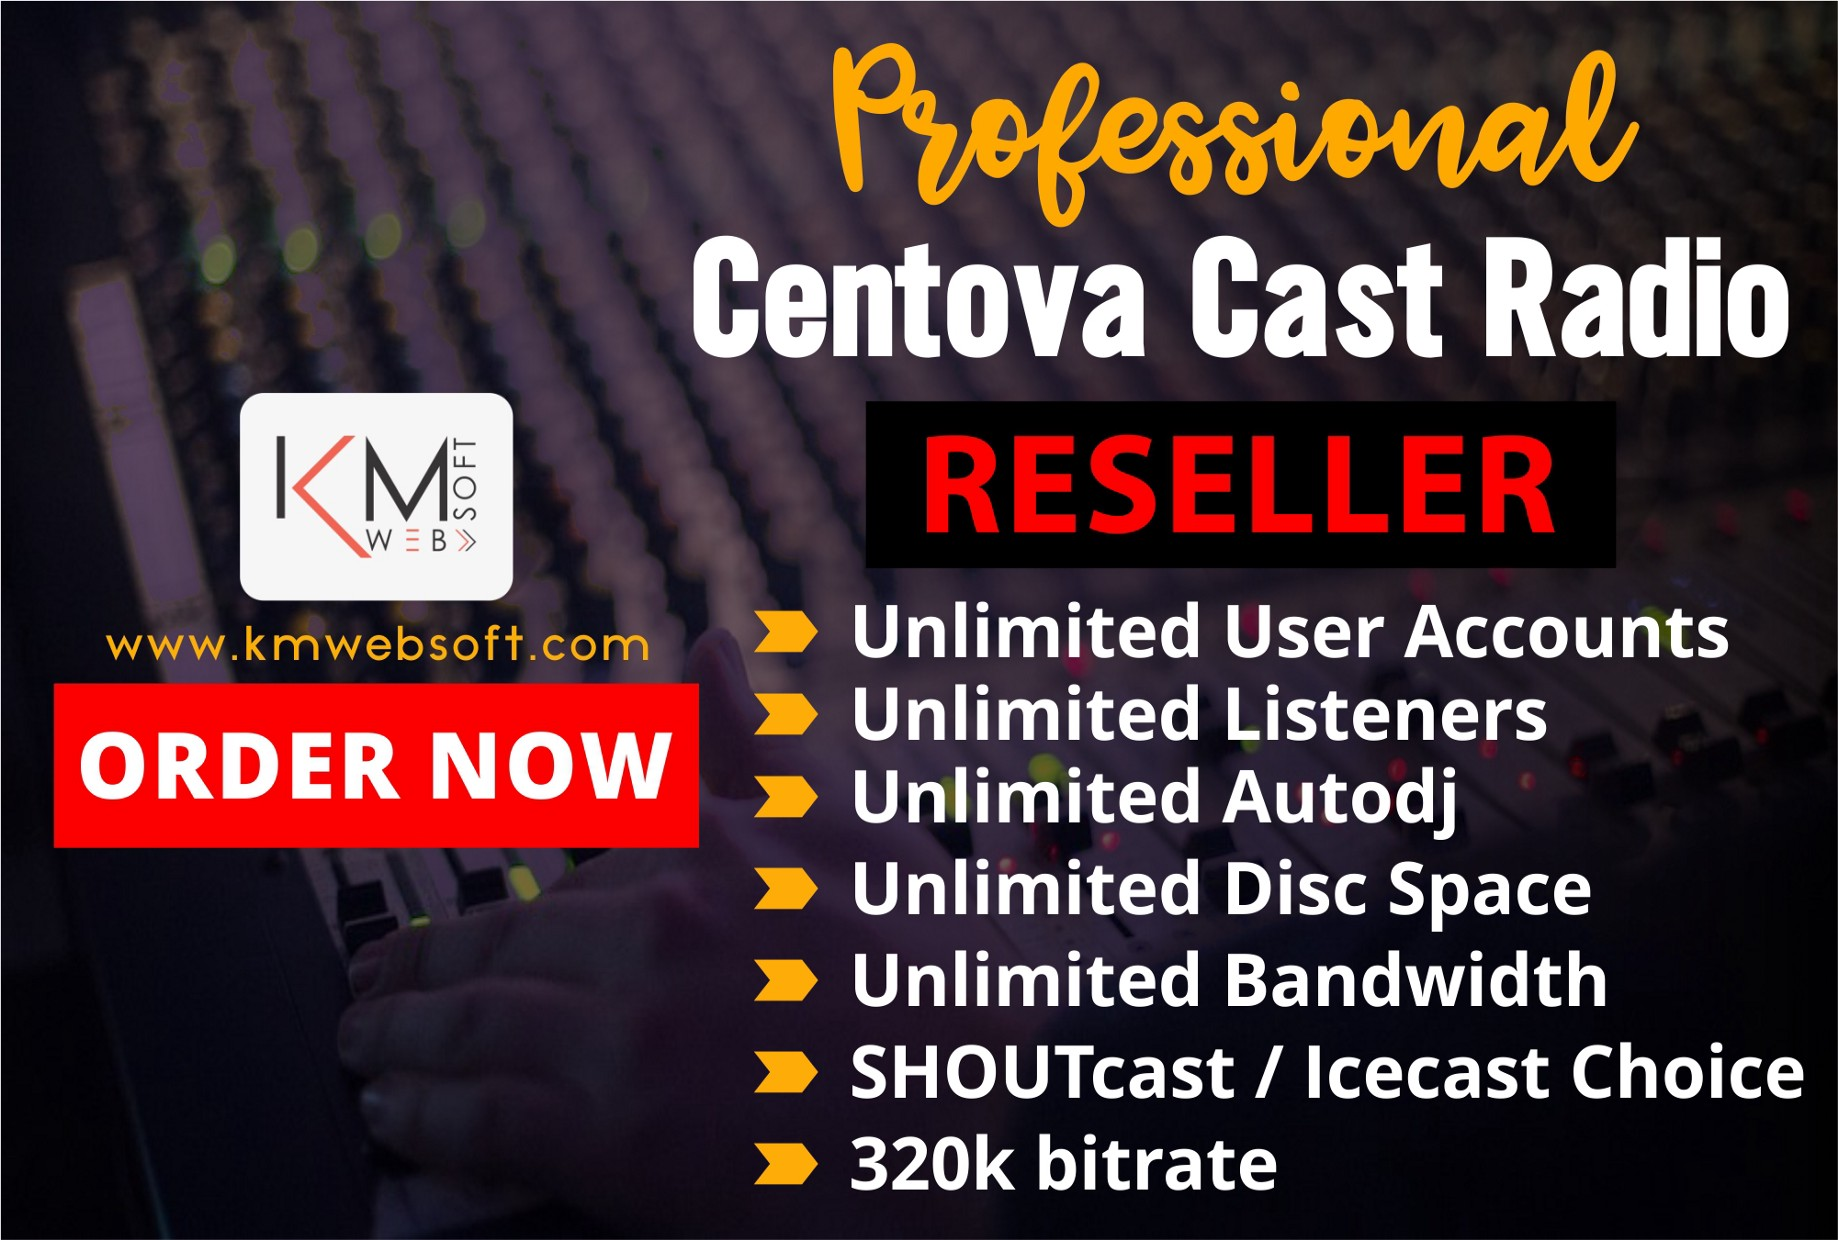 Centova cast Radio Reseller - kmwebsoft com - Medium